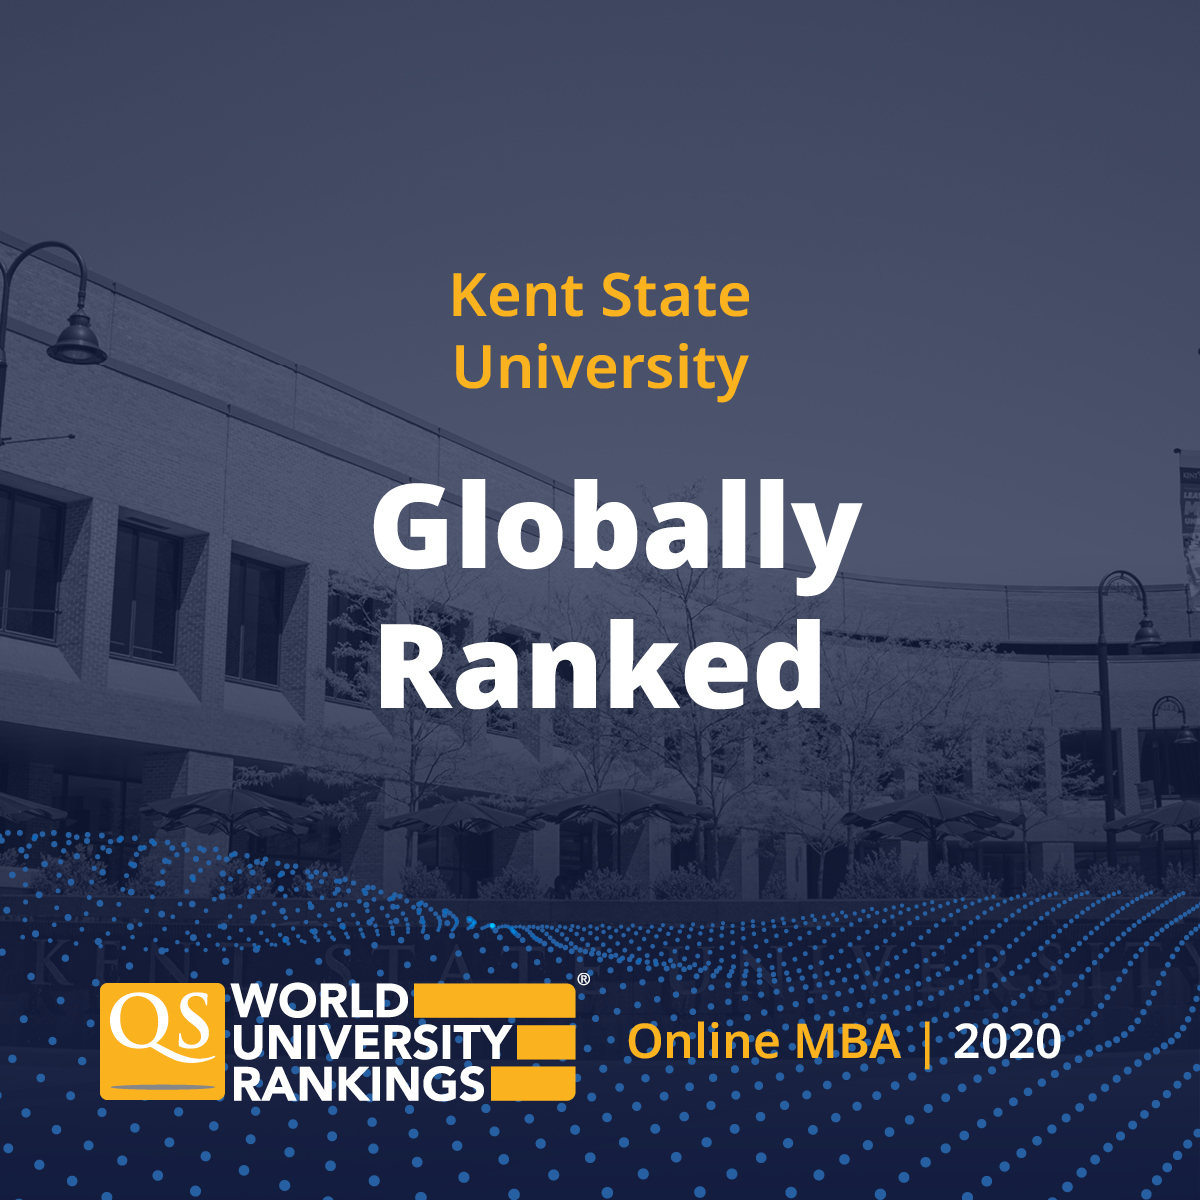 Kent State University Globally Ranked by QS World University Rankings